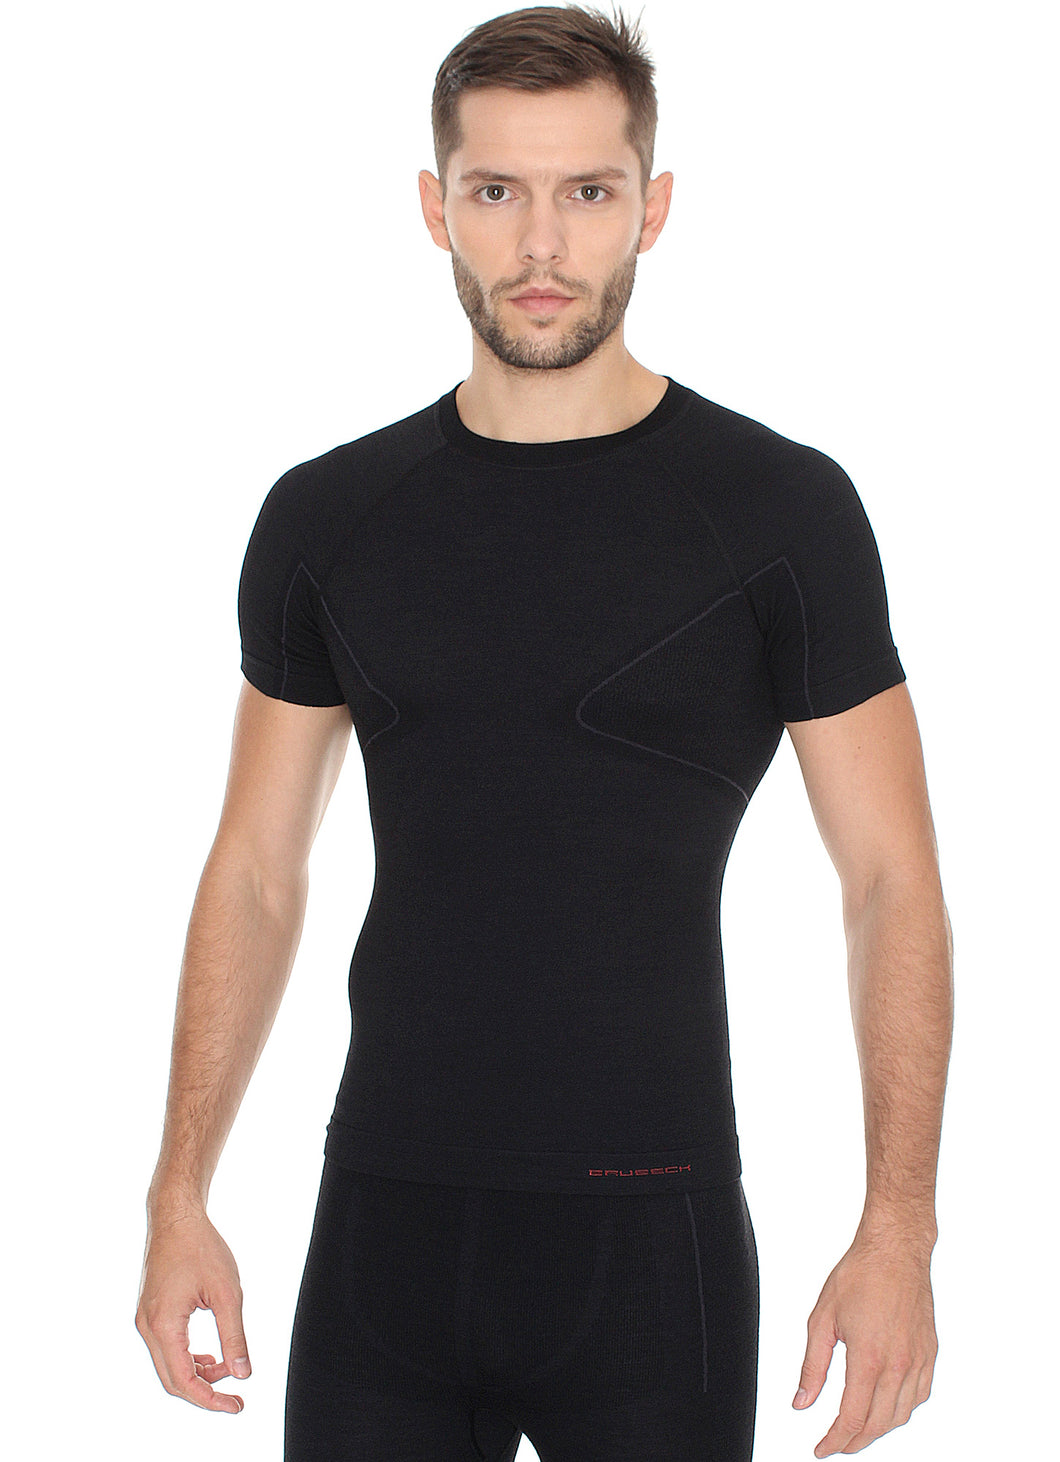 Men's Top ACTIVE WOOL Short Sleeve Black